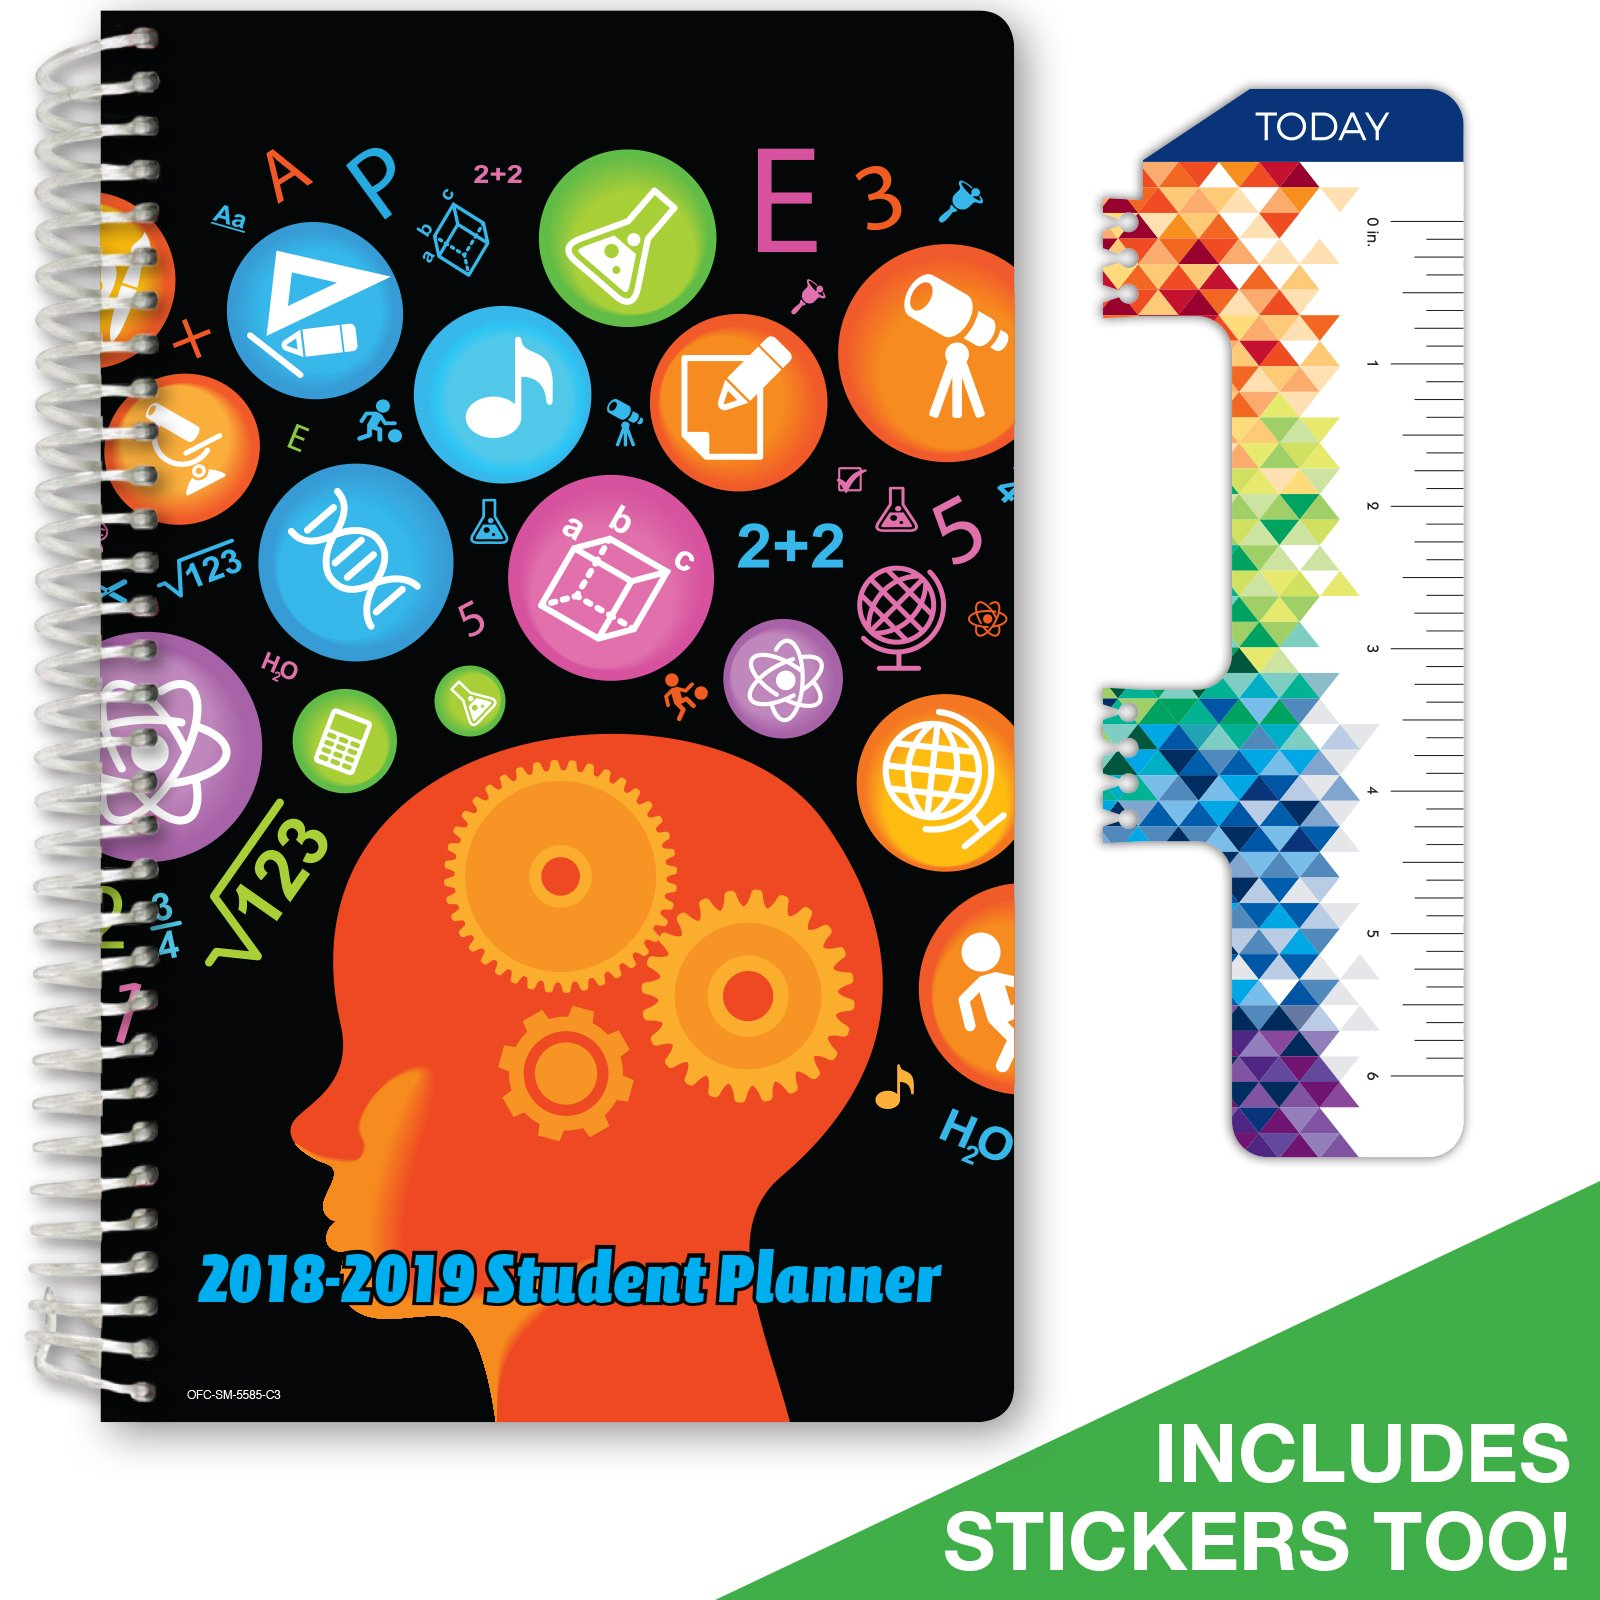 """2018-2019 Student Planner 5.5""""x8.5""""High School or Middle School for Academic Year 2018-2019 (Matrix... by Global Datebooks"""